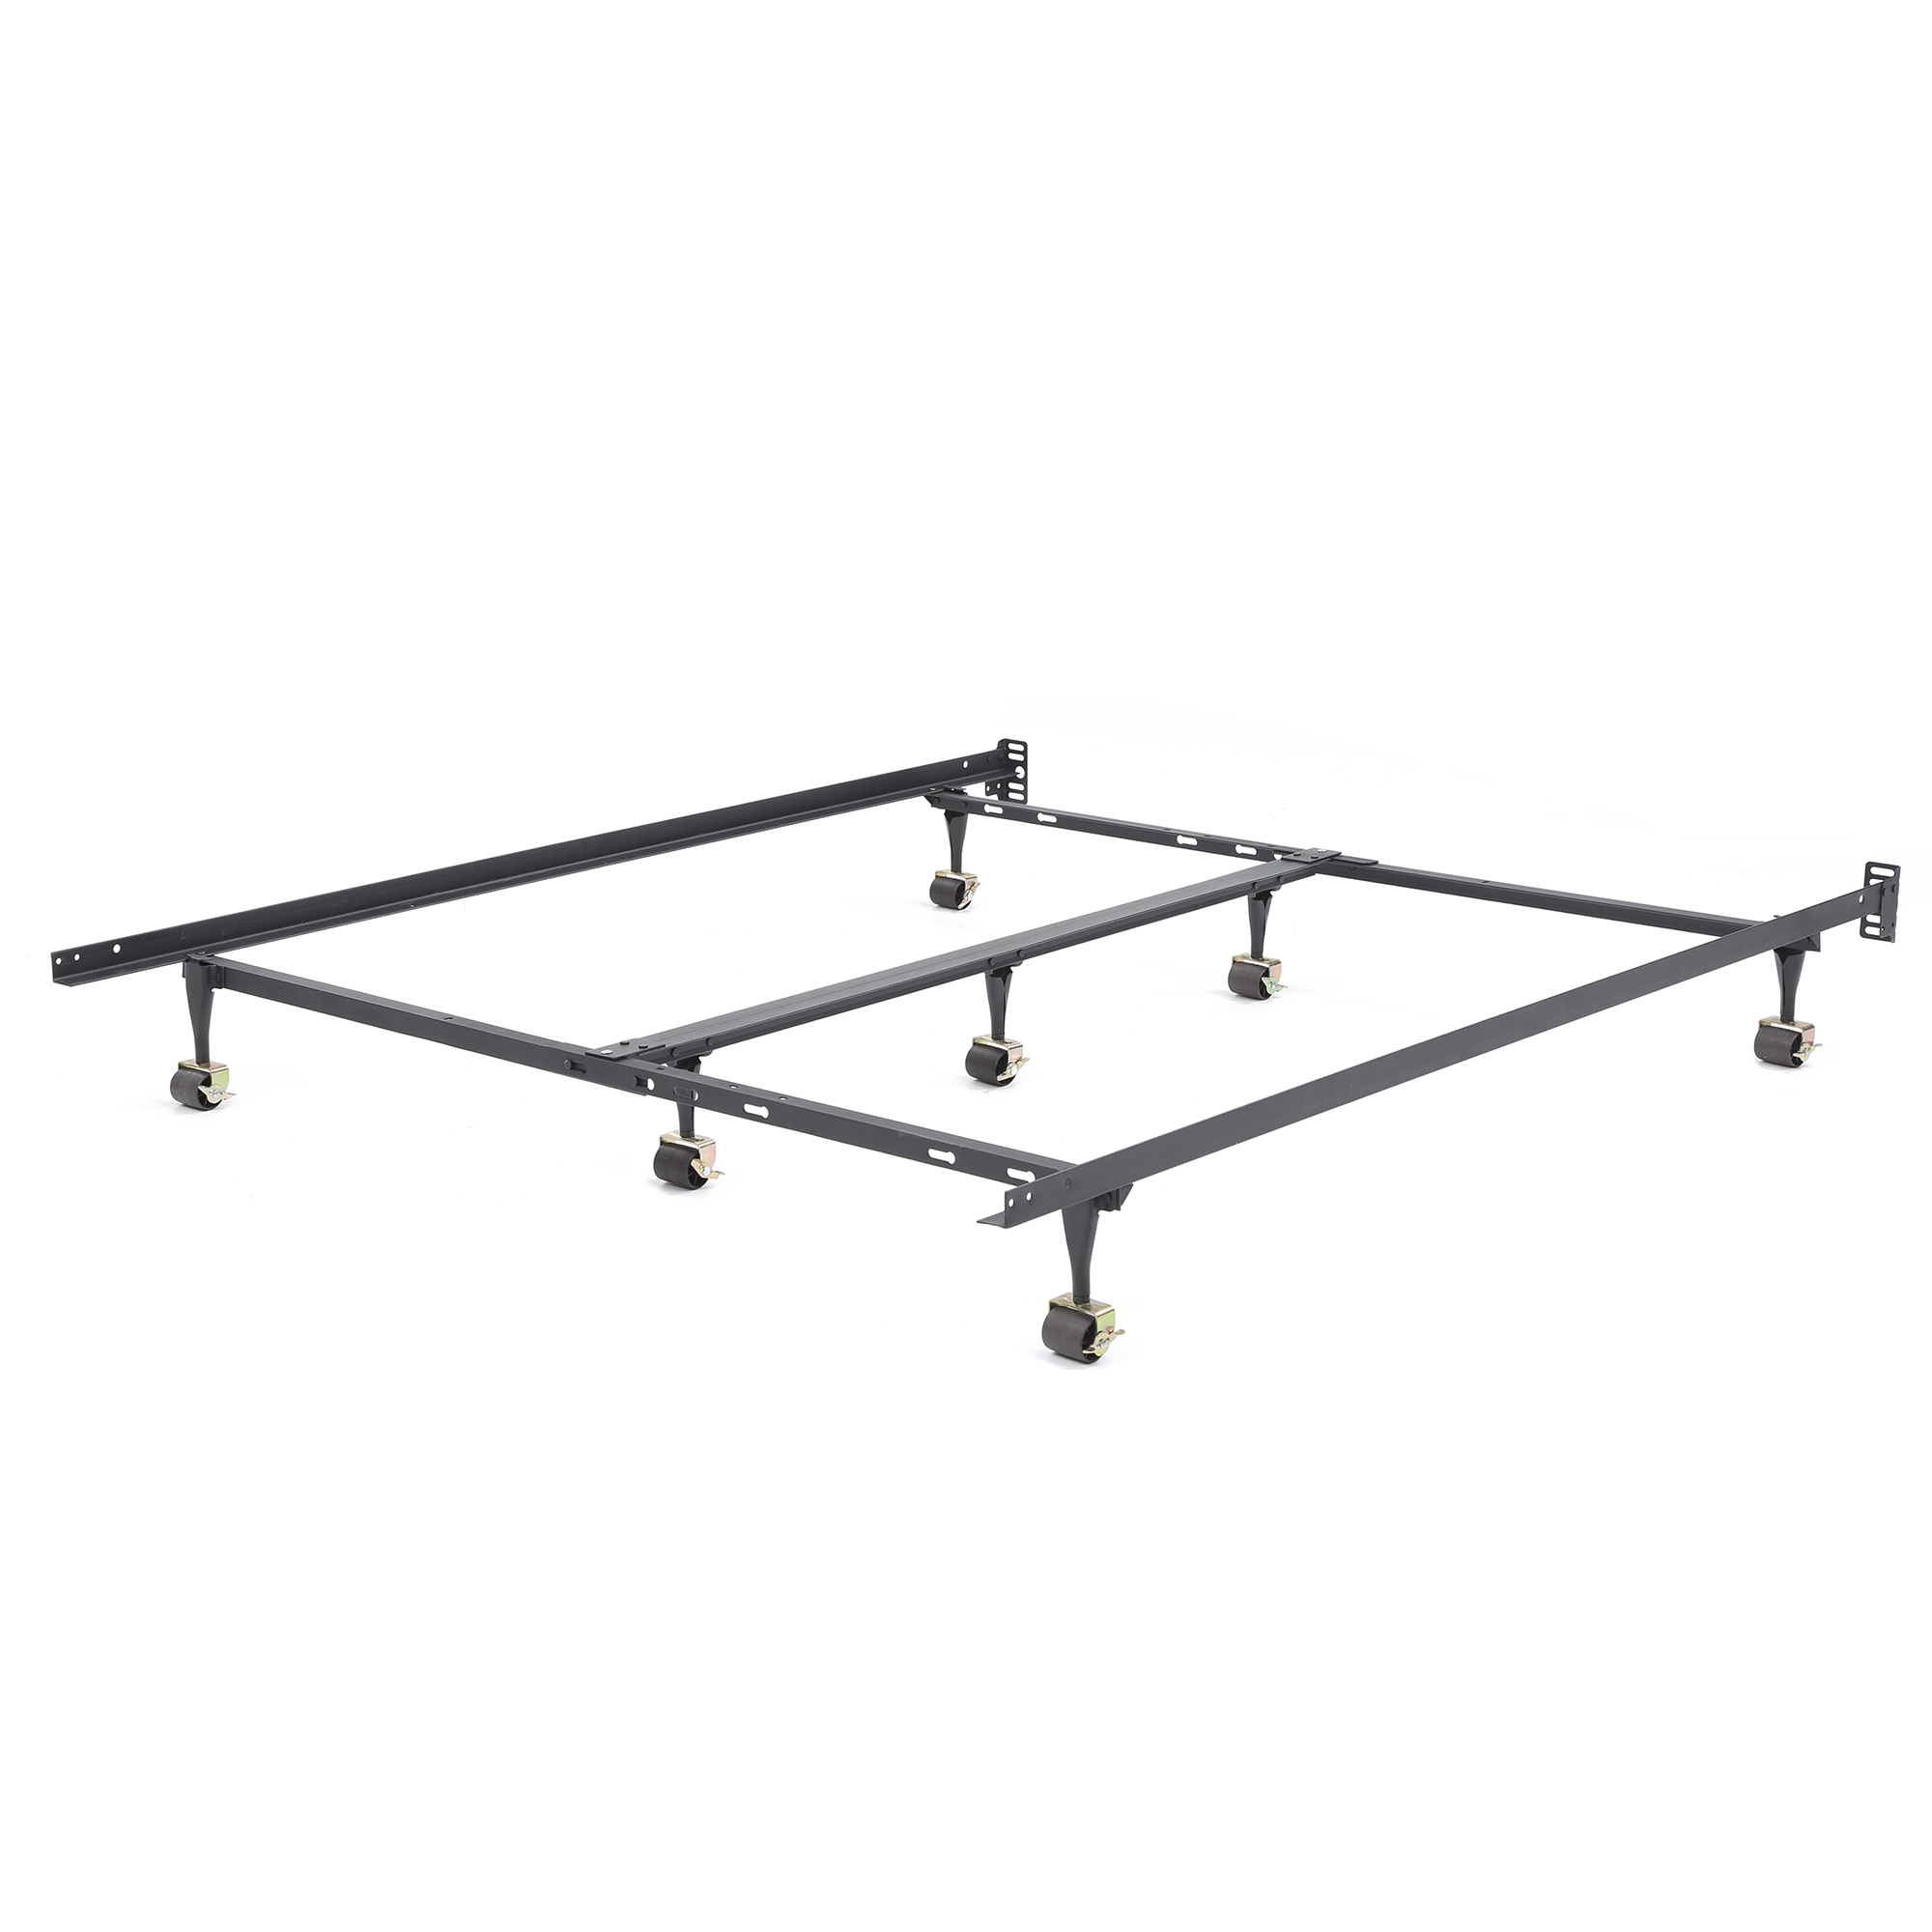 Modern Sleep Hercules Universal Heavy-Duty Metal Bed Frame | Adjustable Width Fits Multiple Sizes